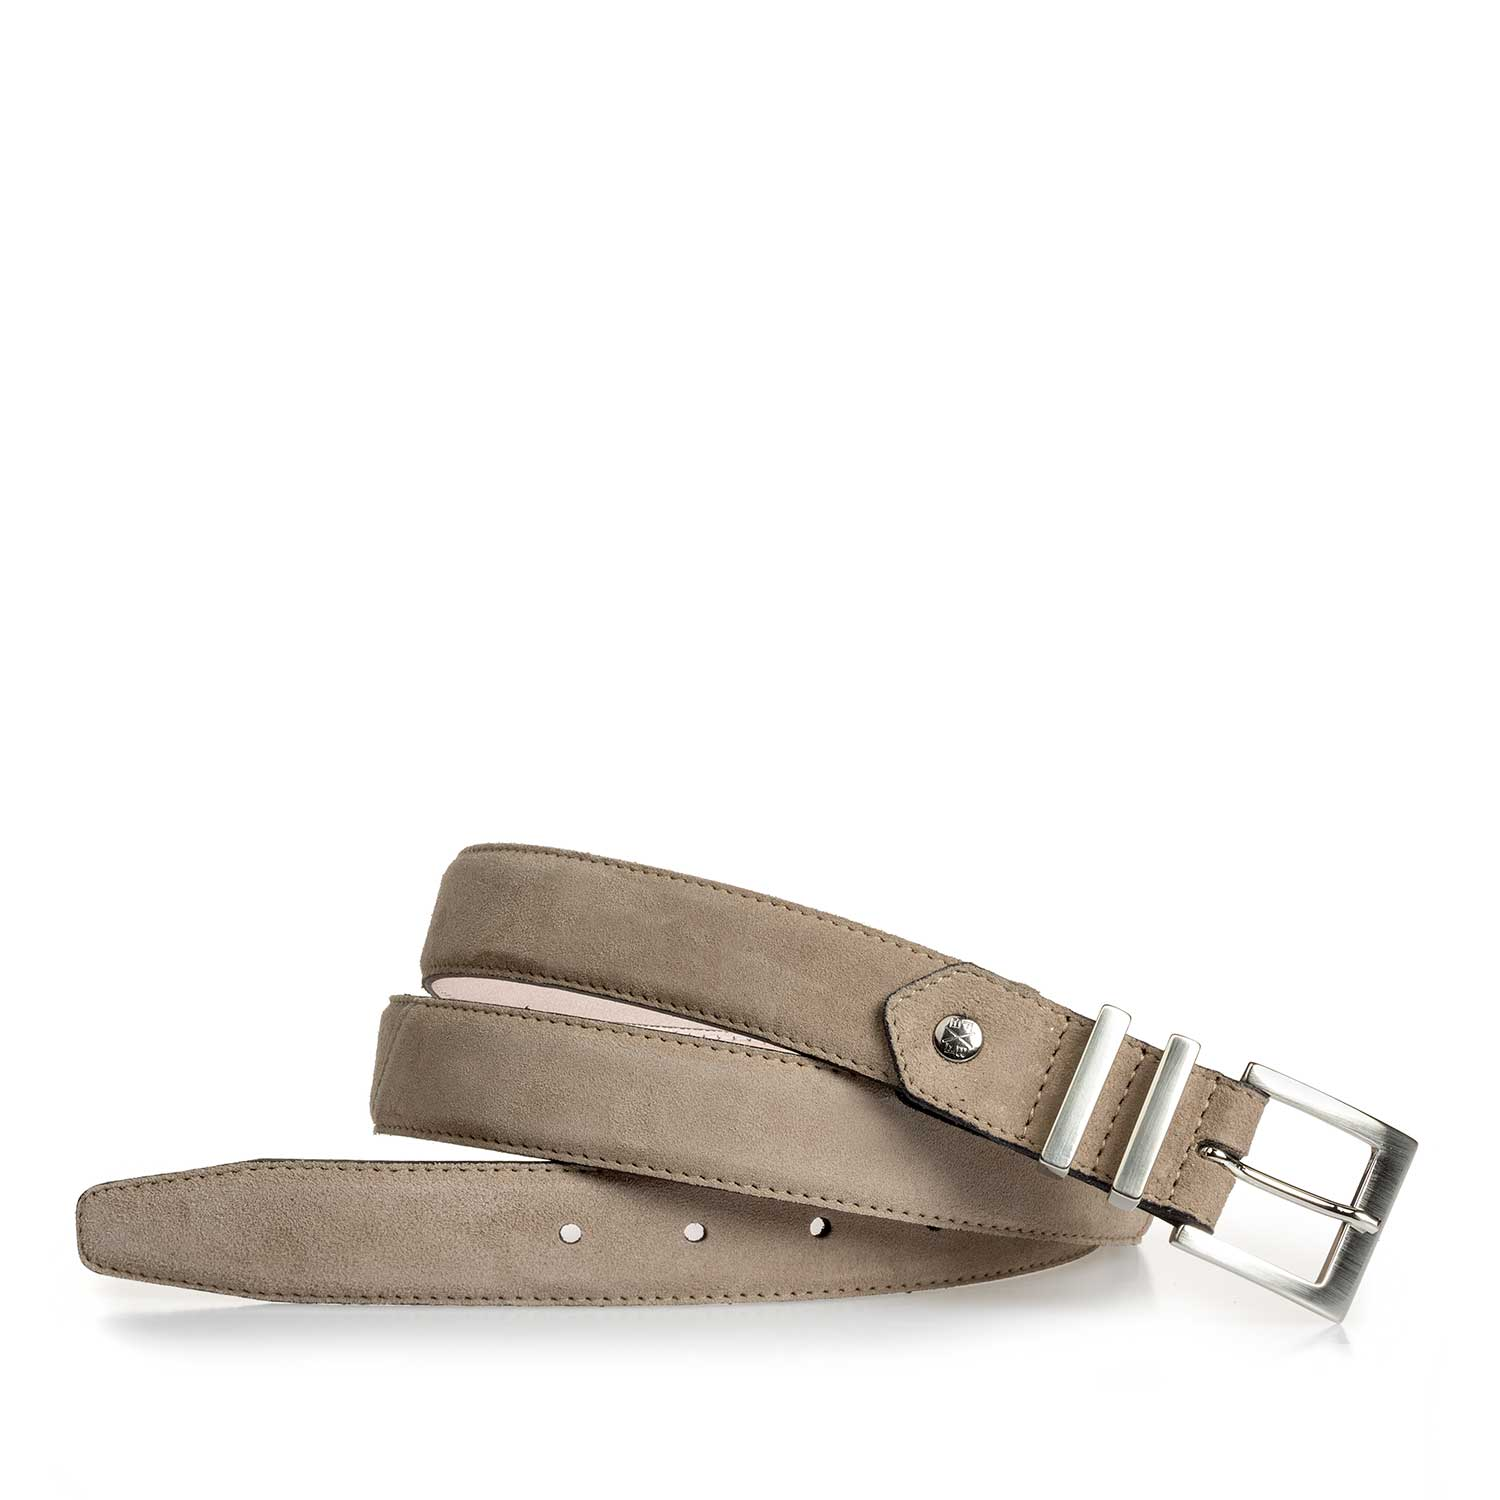 75808/00 - Taupe-coloured calf's suede leather belt